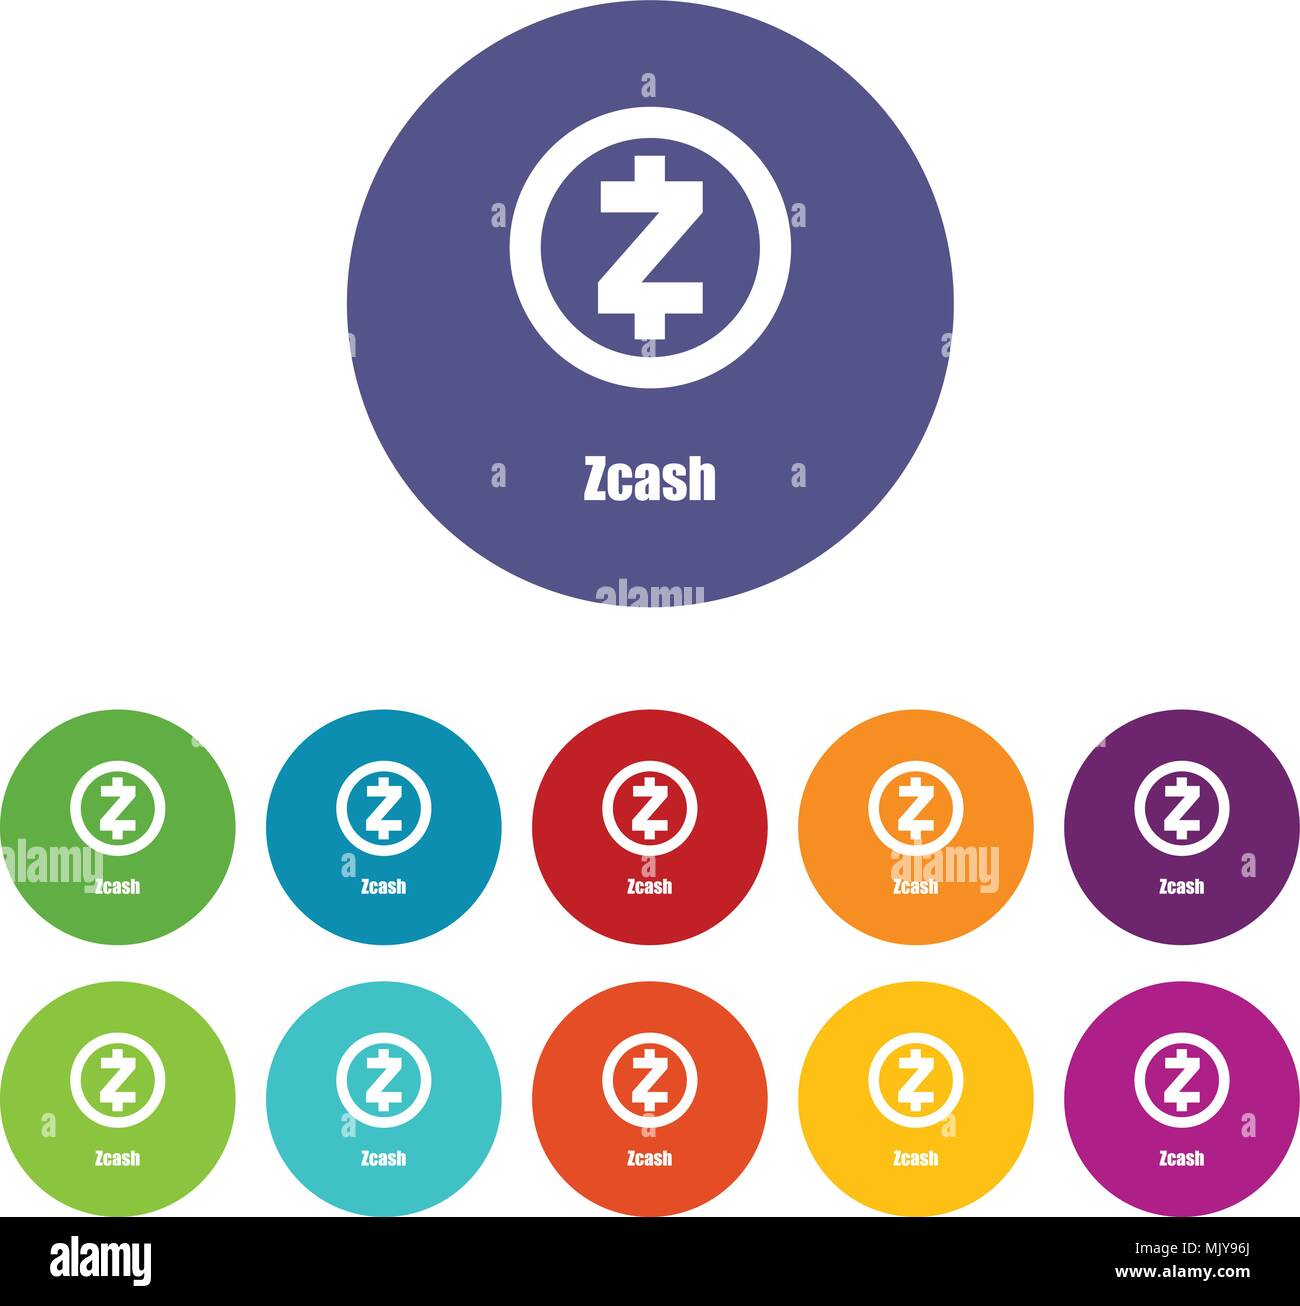 Zcash Icon Simple Style